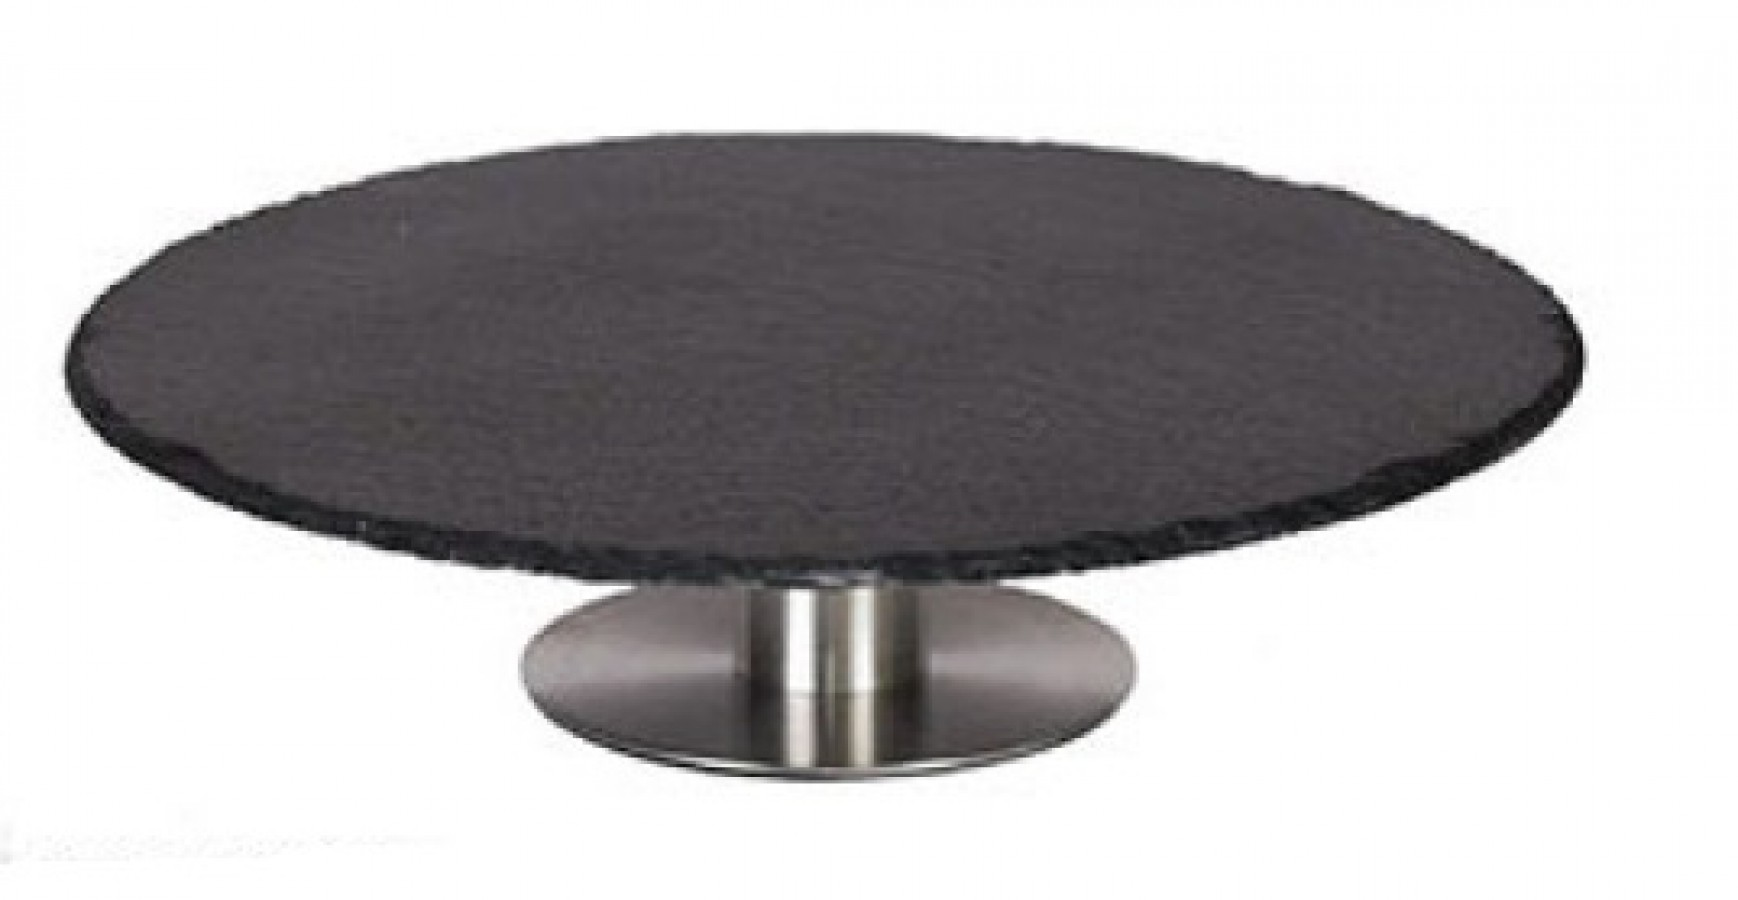 Cake plate slate with stainless steel base